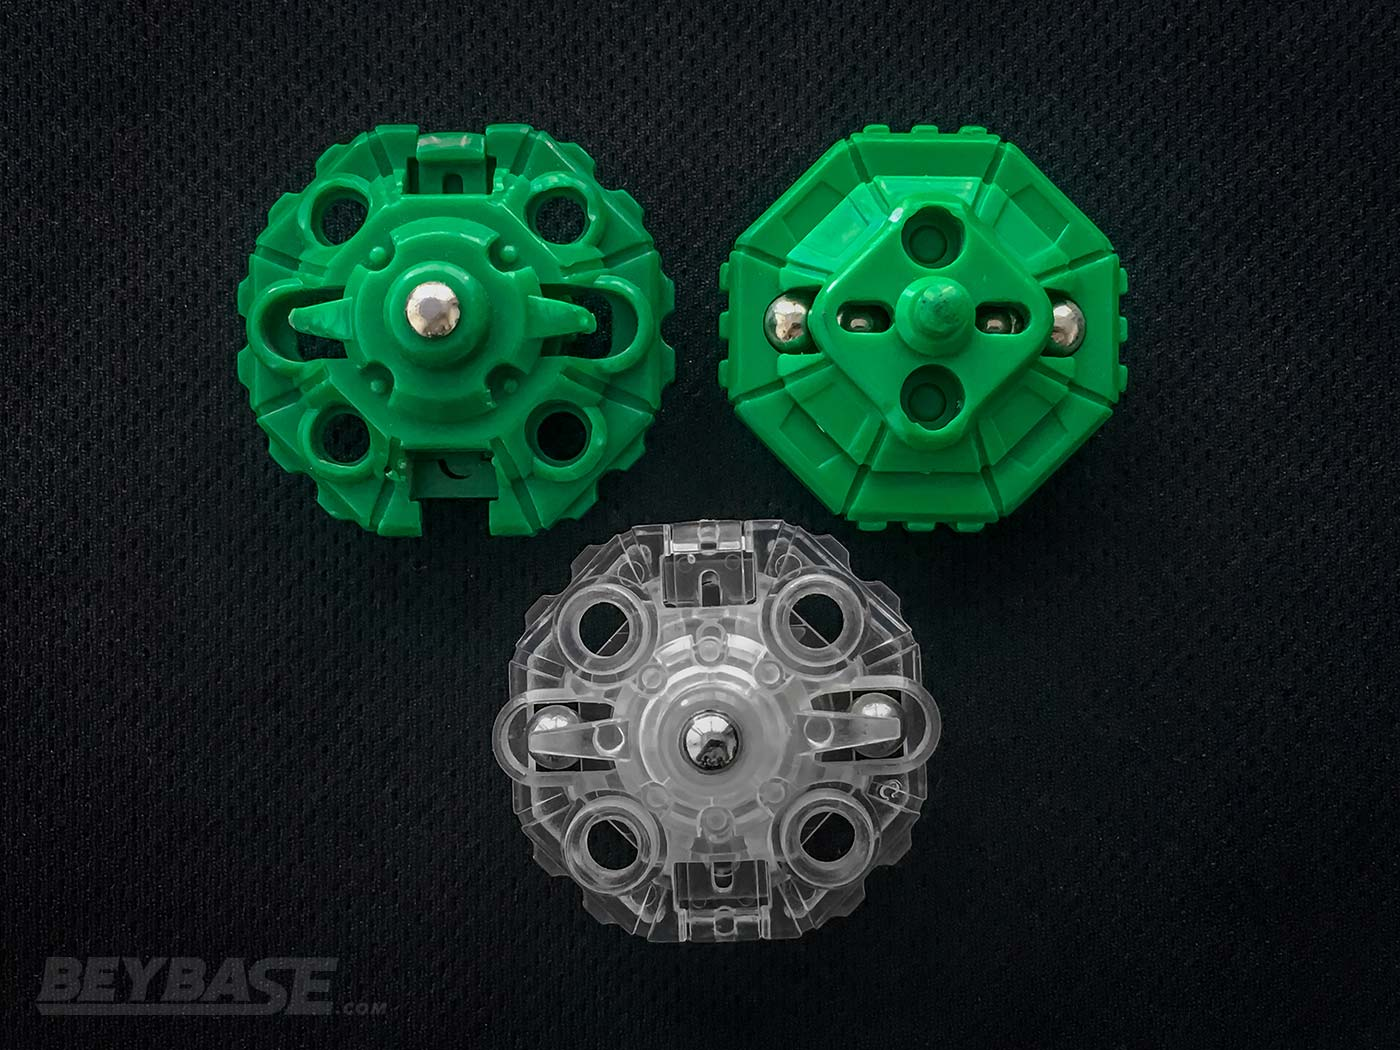 Bakuten Shoot Beyblade Draciel Blade Bases: SG Metal Ball Base, Metal Ball Base, and Fortress Base